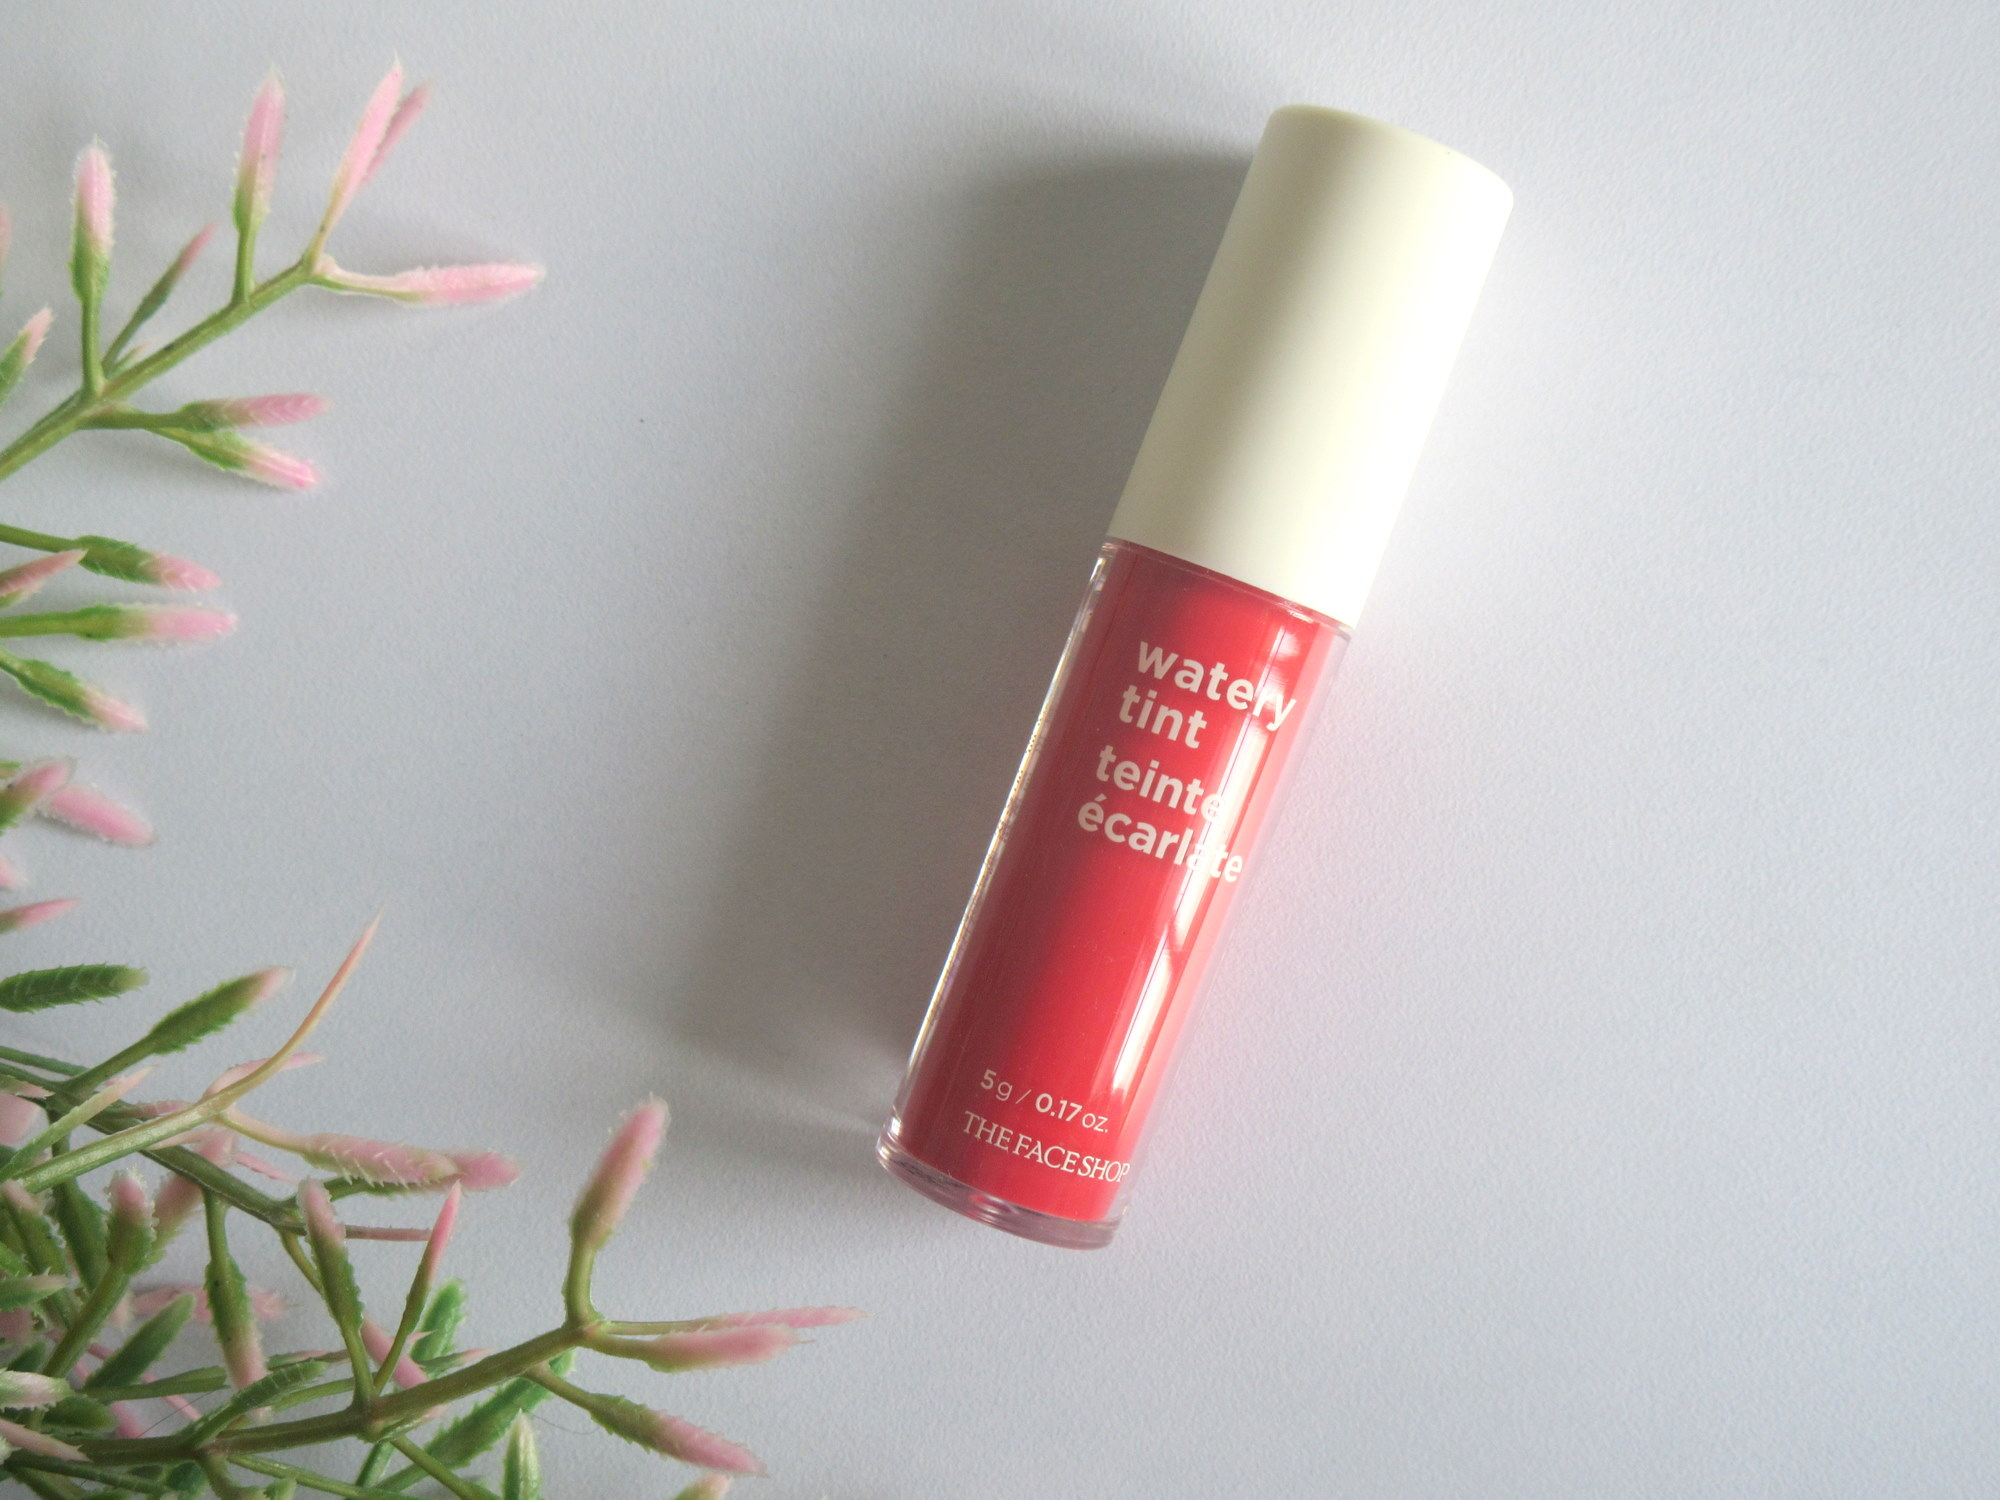 the face shop watery tint 06 rose garden, the face shop water tint lip stain